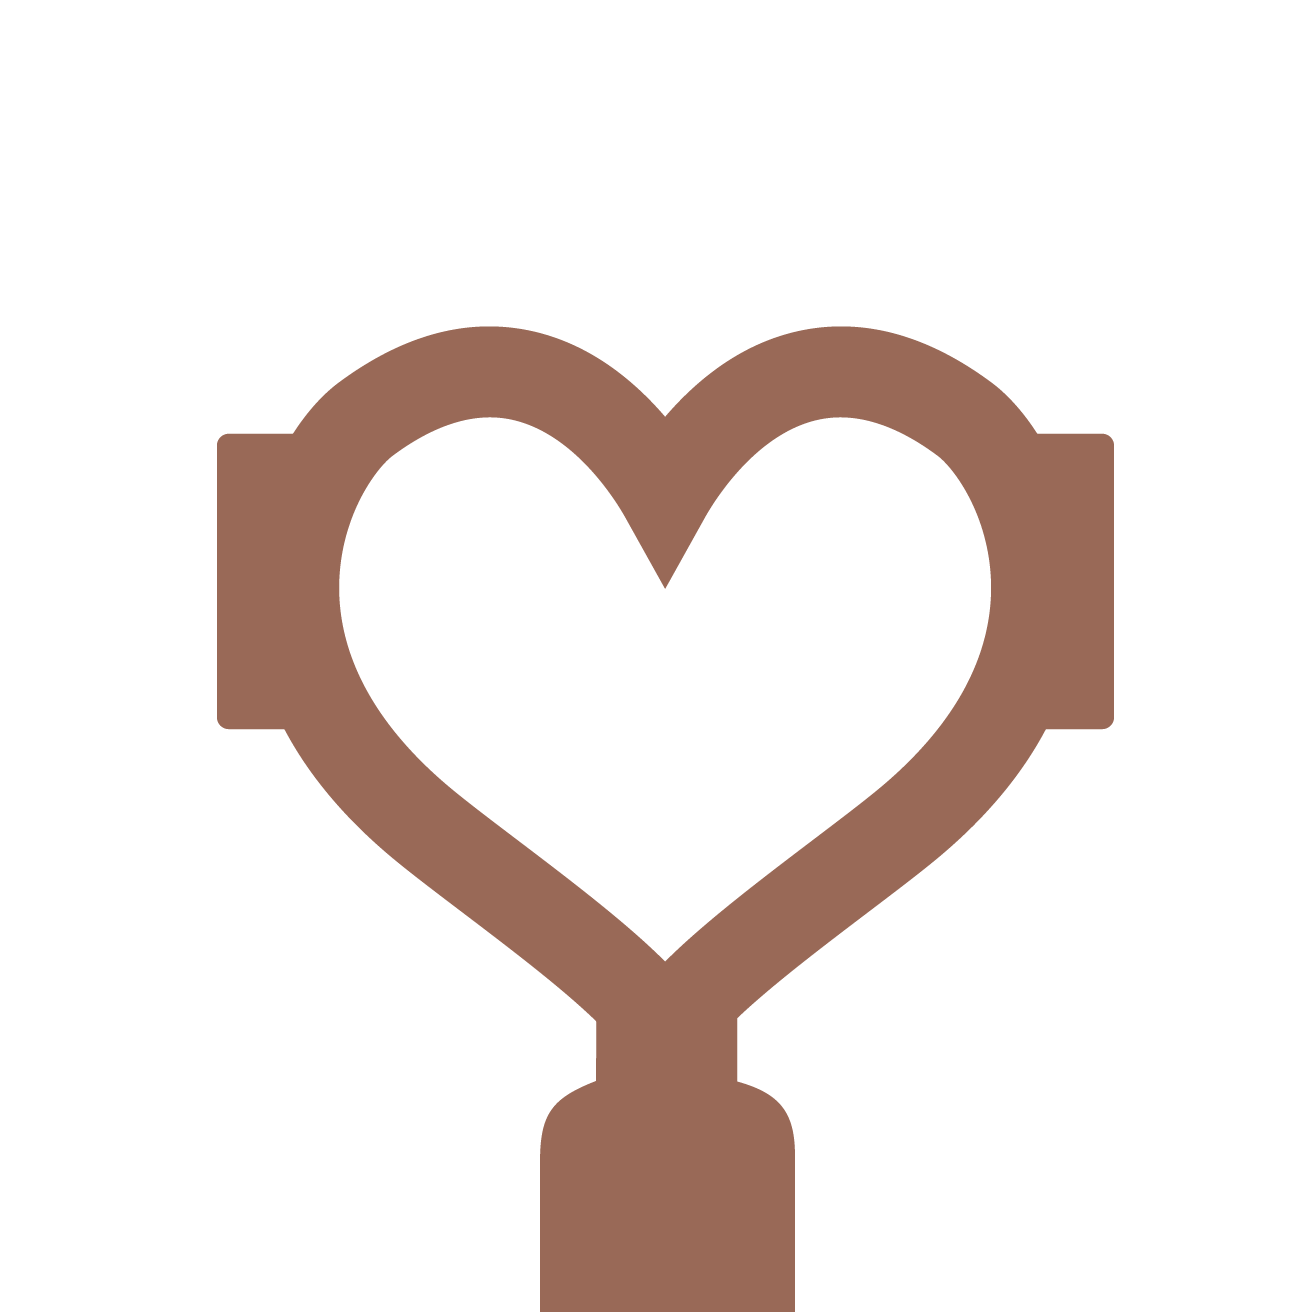 Ascaso Dream UK - Polished, Exclusive to BellaBarista